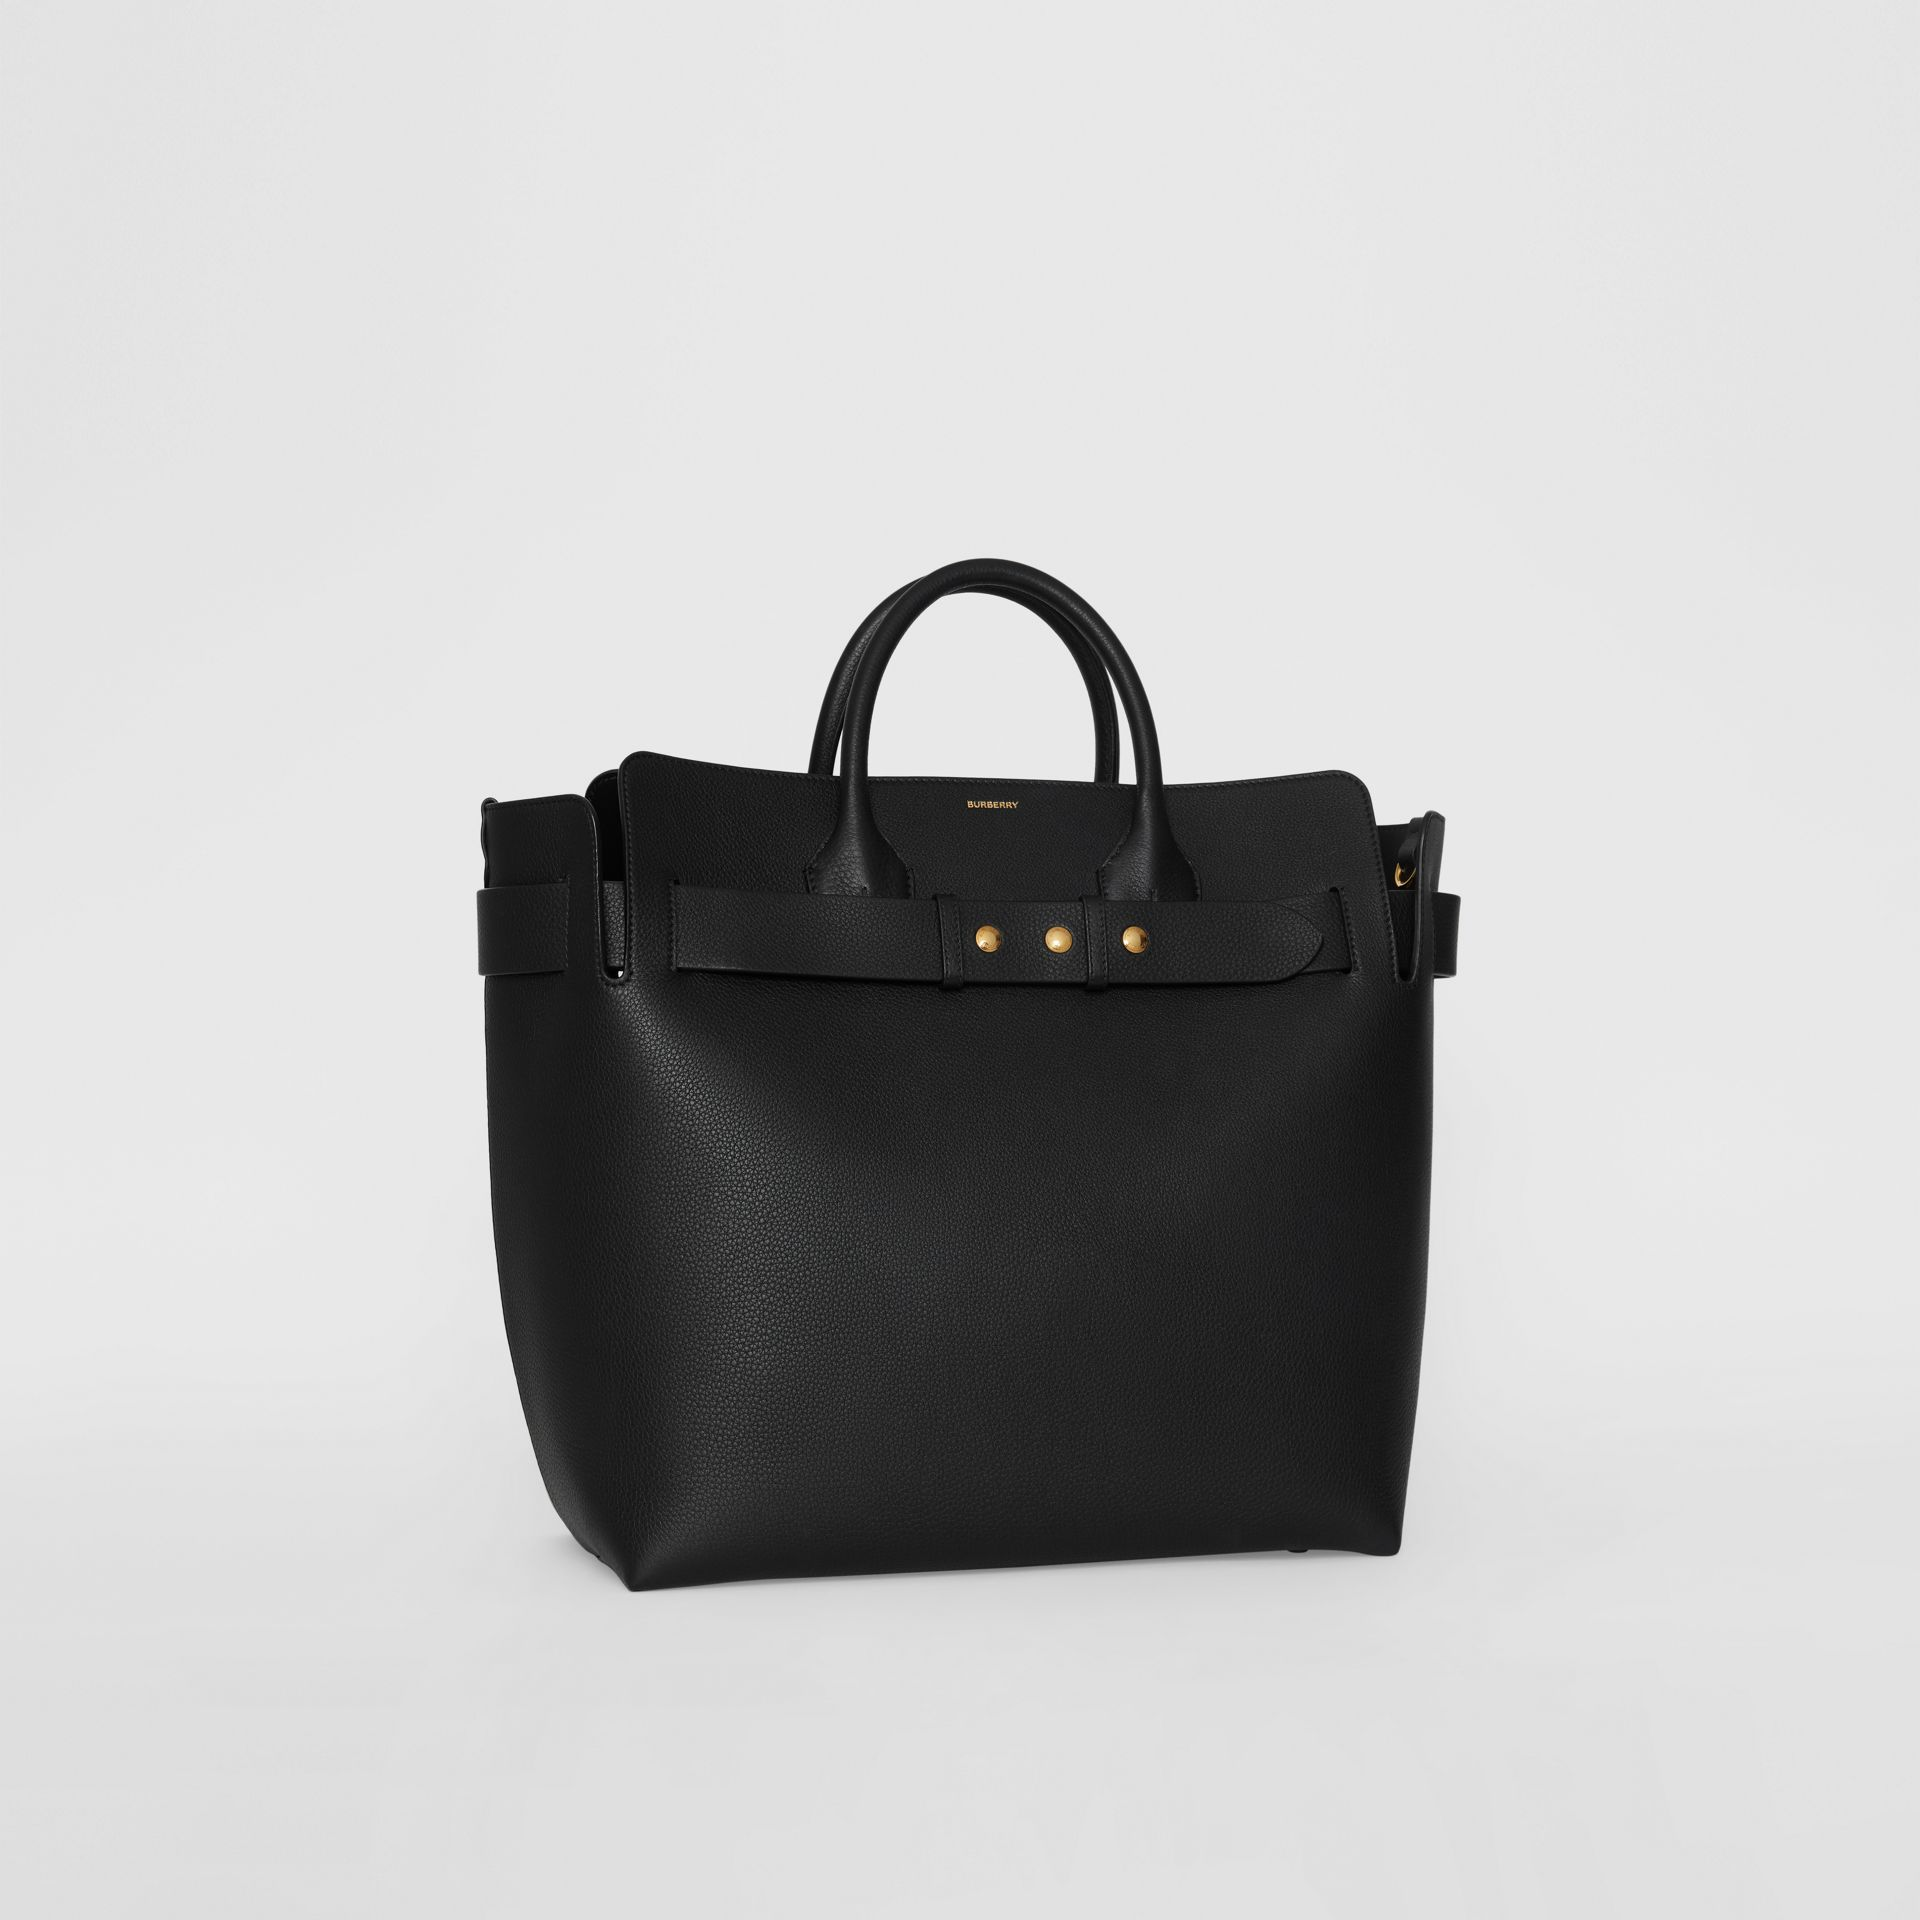 Borsa The Belt grande in pelle con tre borchie (Nero) - Donna | Burberry - immagine della galleria 8